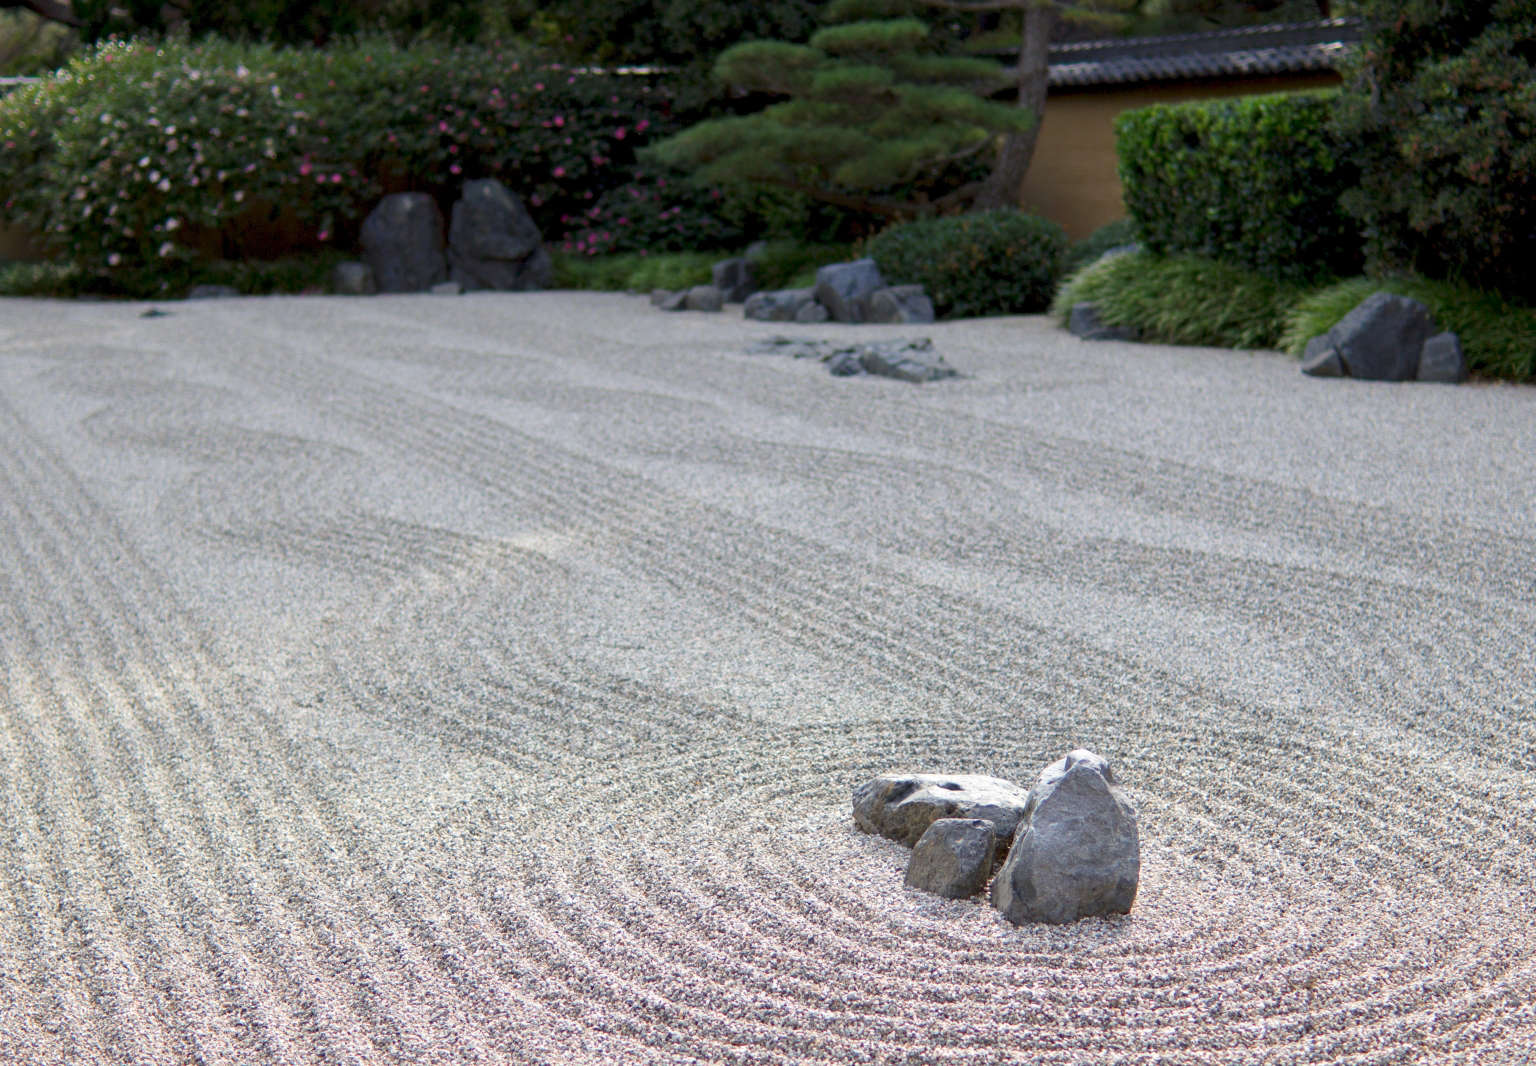 Photos Of Japanese Dry Landscape Gardens Near Zen Temples Always Lower My  Blood Pressure, With Their Peaceful Arrangements Of Rocks, Gravel, Moss, ...